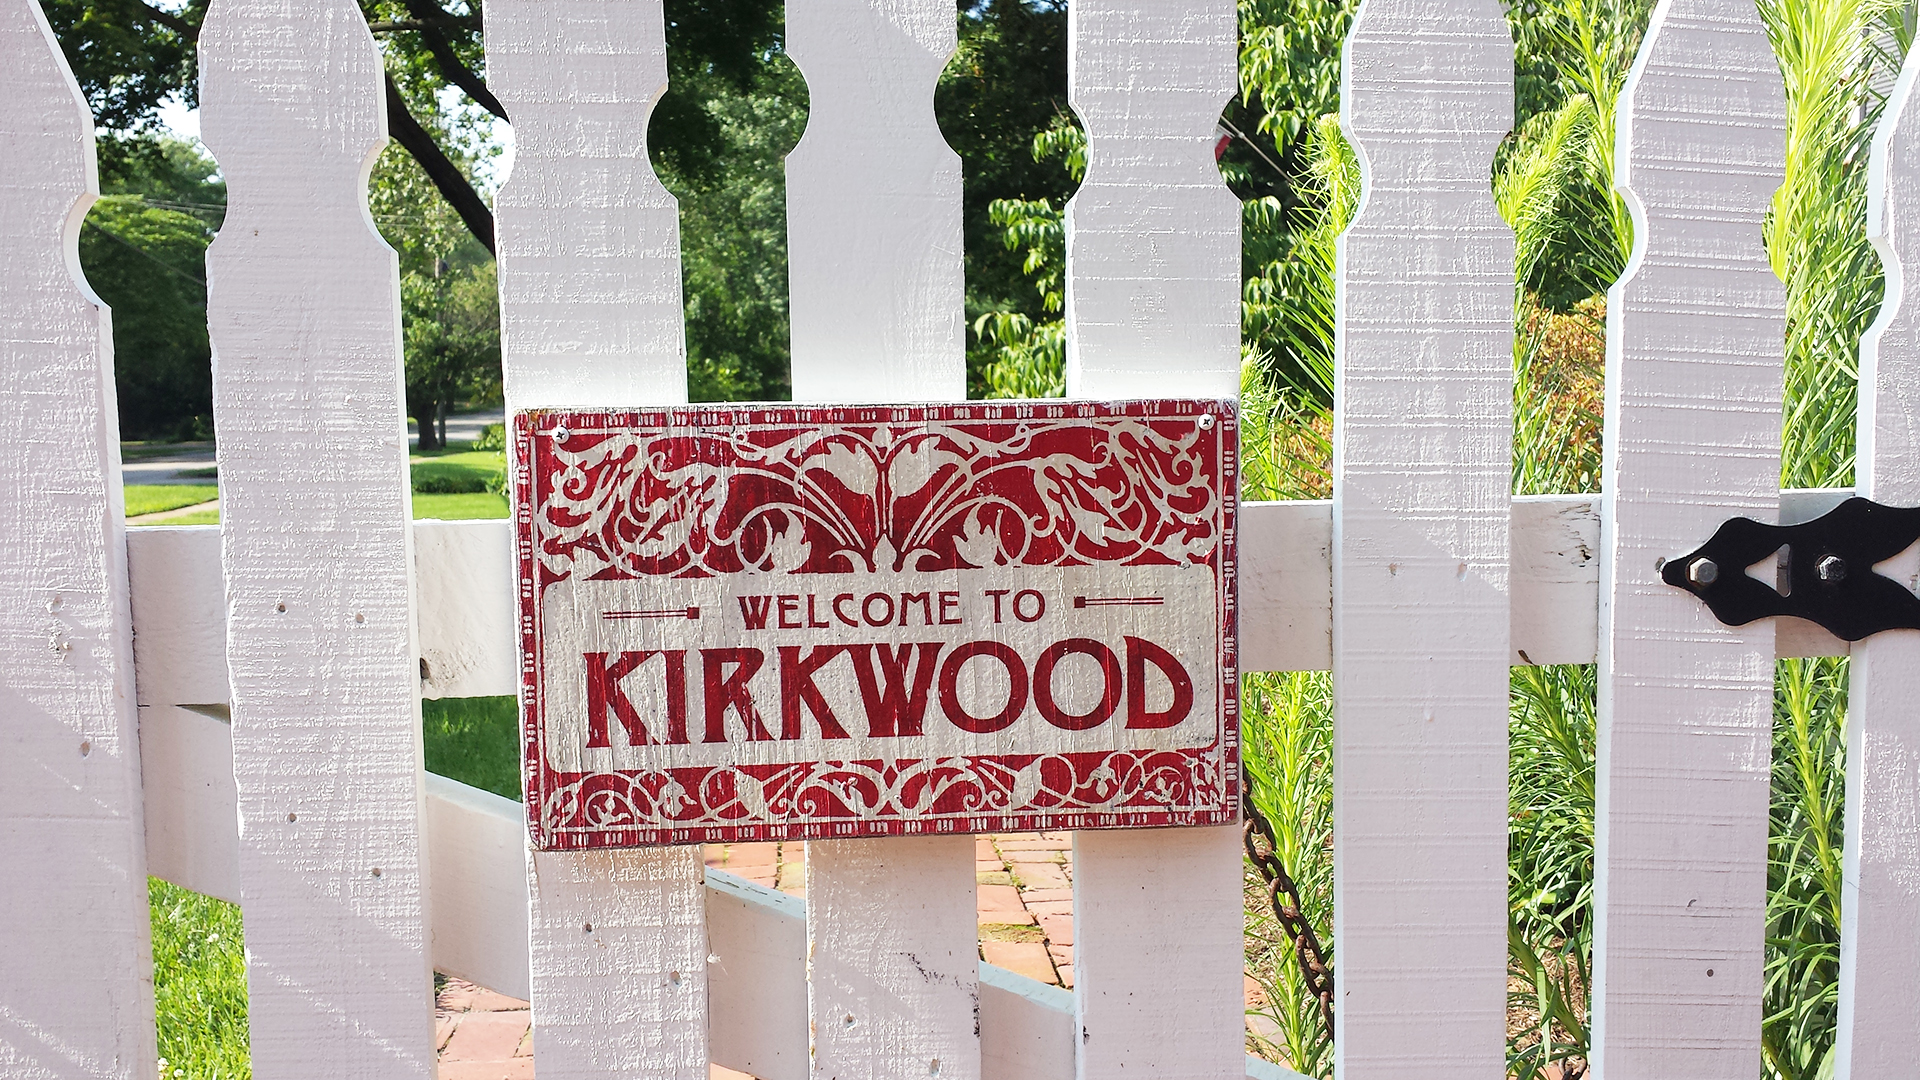 Welcome to Kirkwood by Laura Gier